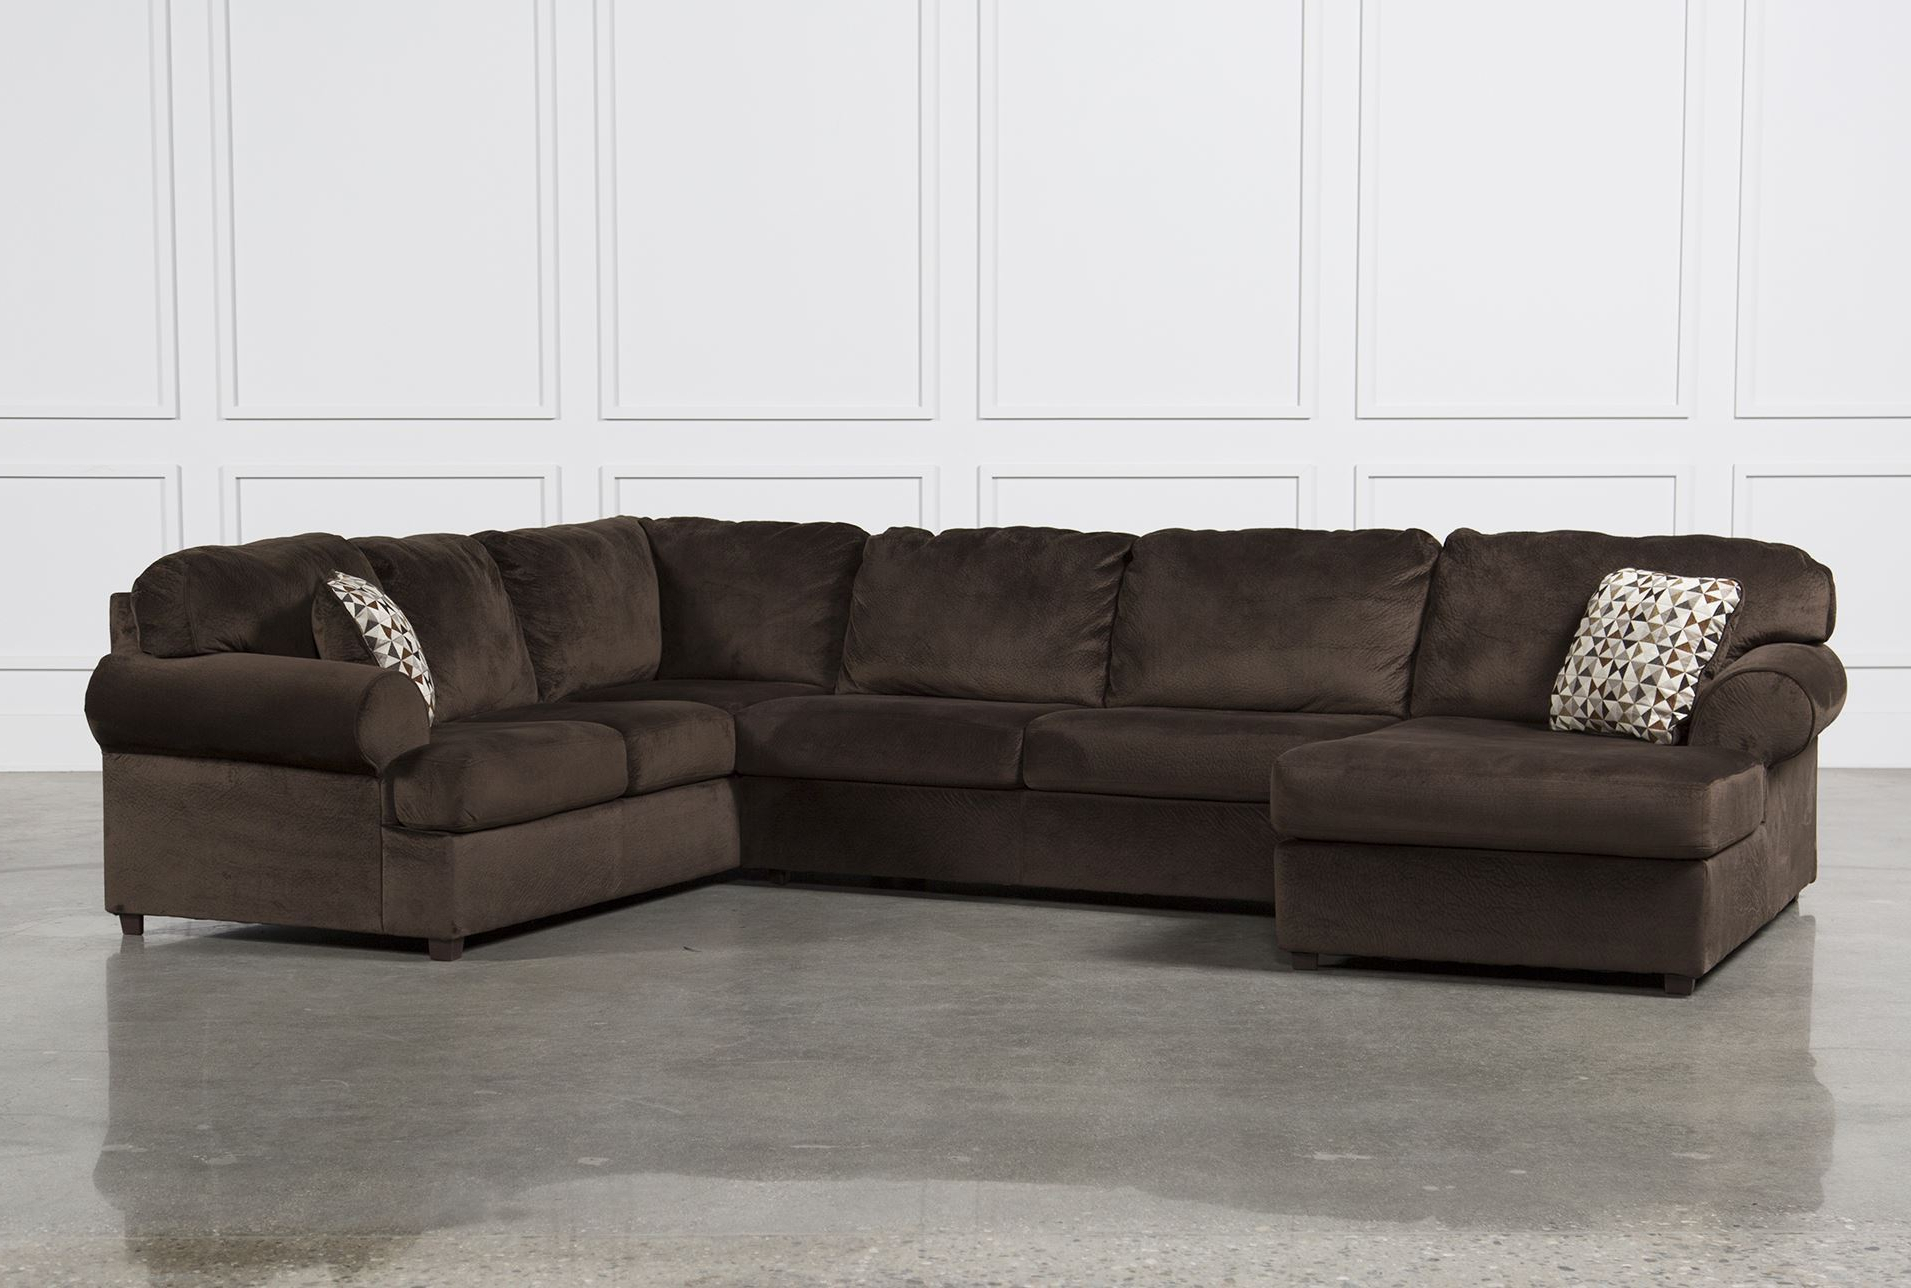 Sectional Sofas Leather And Couches Ideas With Living Spaces Couch Inside 2019 Norfolk Grey 3 Piece Sectionals With Laf Chaise (View 17 of 20)